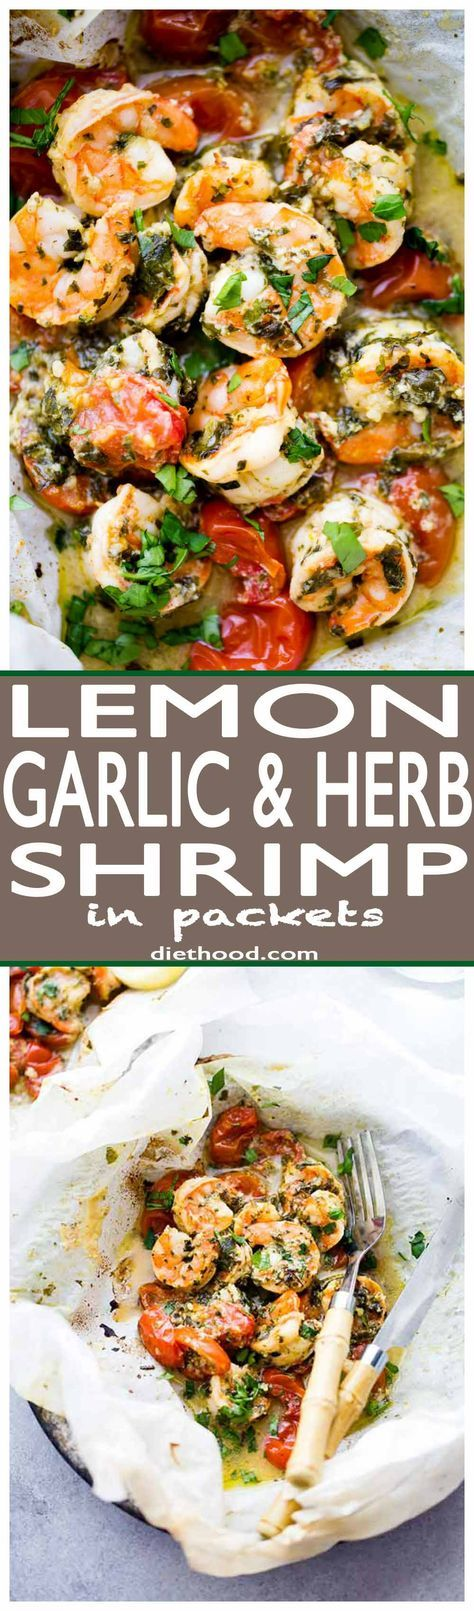 Lemon Garlic Herb Shrimp in Packets - This is the BEST, most delicious baked shrimp recipe made with an amazing lemon garlic herb sauce and cooked inside parchment packets!